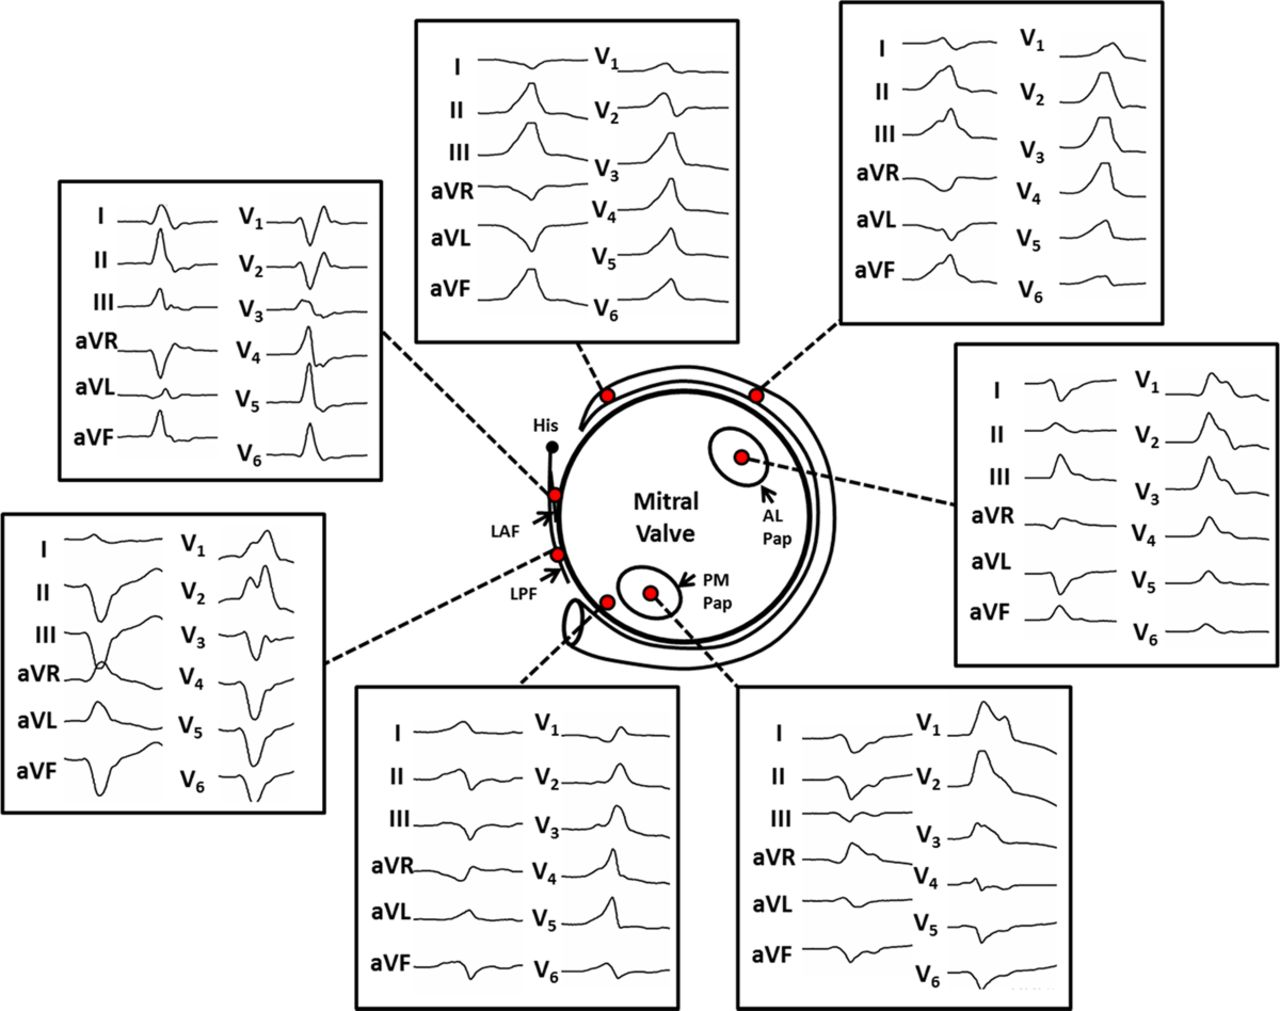 differentiation of papillary muscle from fascicular and mitral annular ventricular arrhythmias